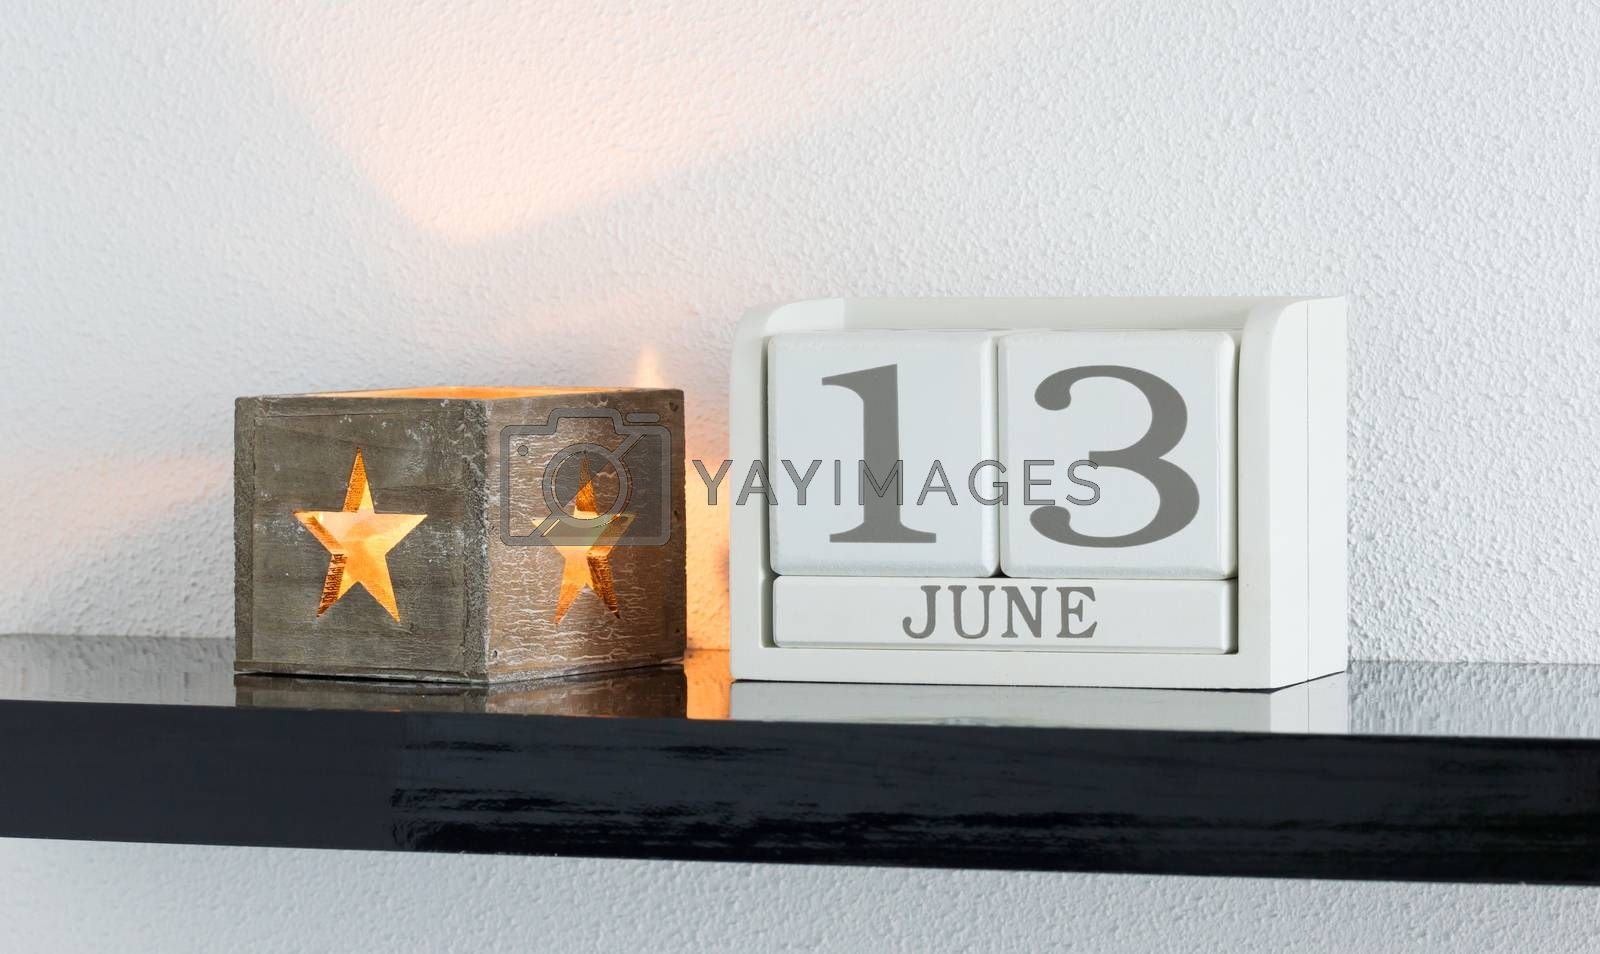 White block calendar present date 13 and month June by michaklootwijk